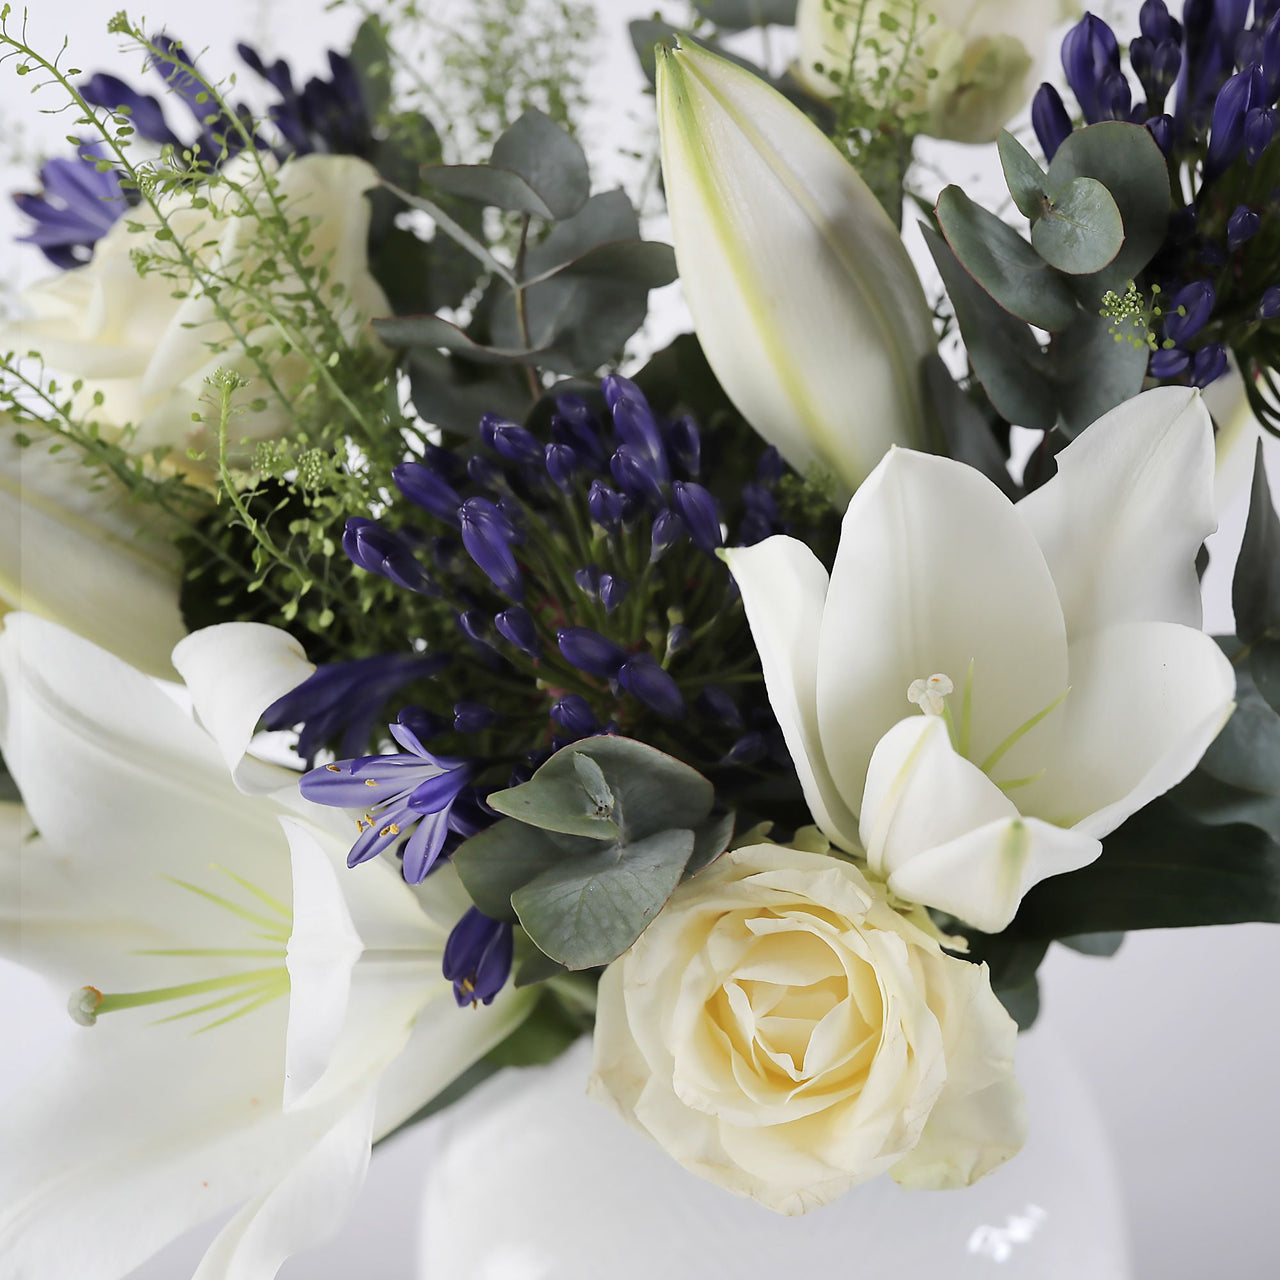 Great Value Flowers A Beautiful Hand Tied Bouquet of Orange Lillies with Free UK DELIVERY and Next Day DELIVERY Available.